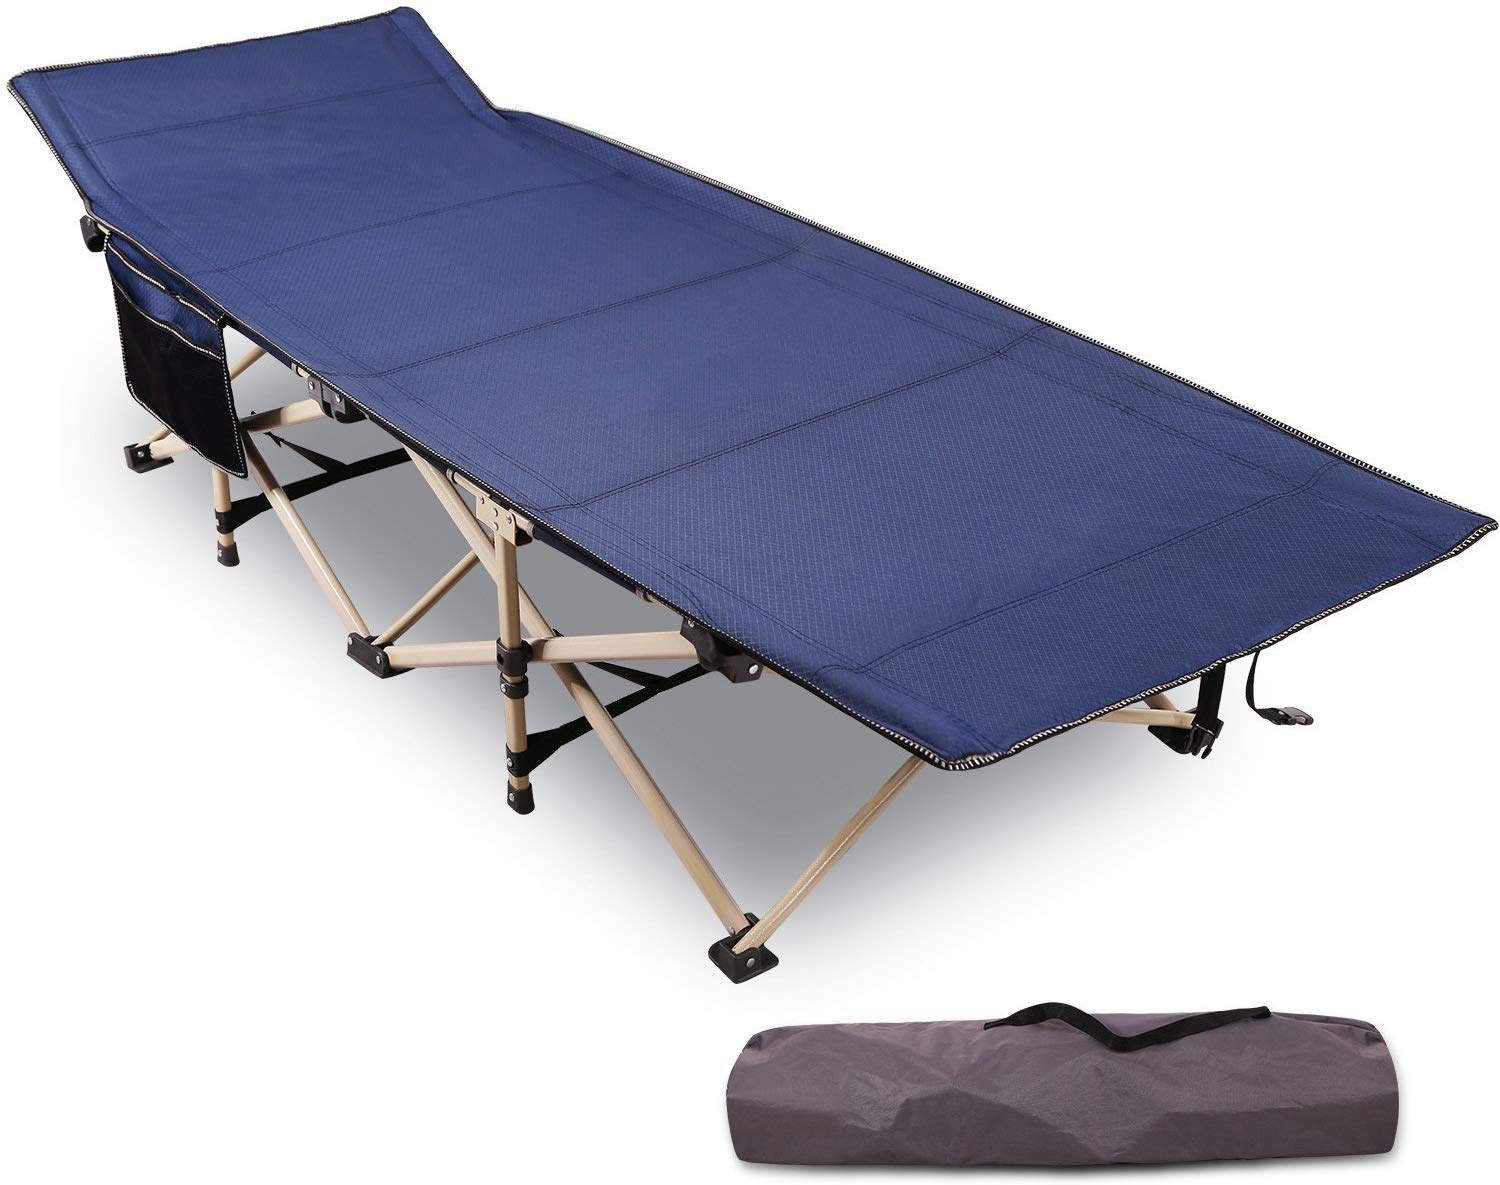 REDCAMP Folding Camping Cots for Adults Heavy Duty, 28in - 33in Extra Wide Sturdy Portable Sleeping Cot for Camp Office Use, Blue Gray Green